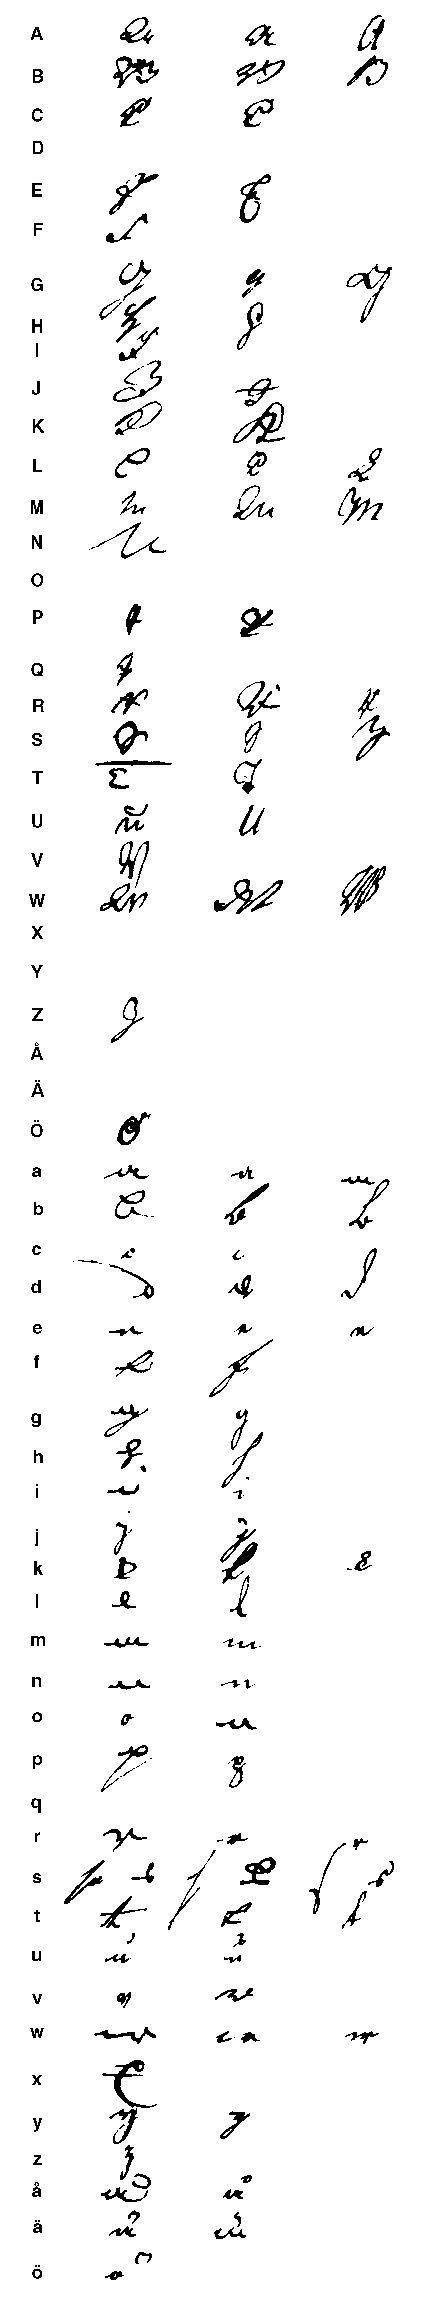 18th Century Letters. Normally I can figure out what was written, but this might help sometimes.